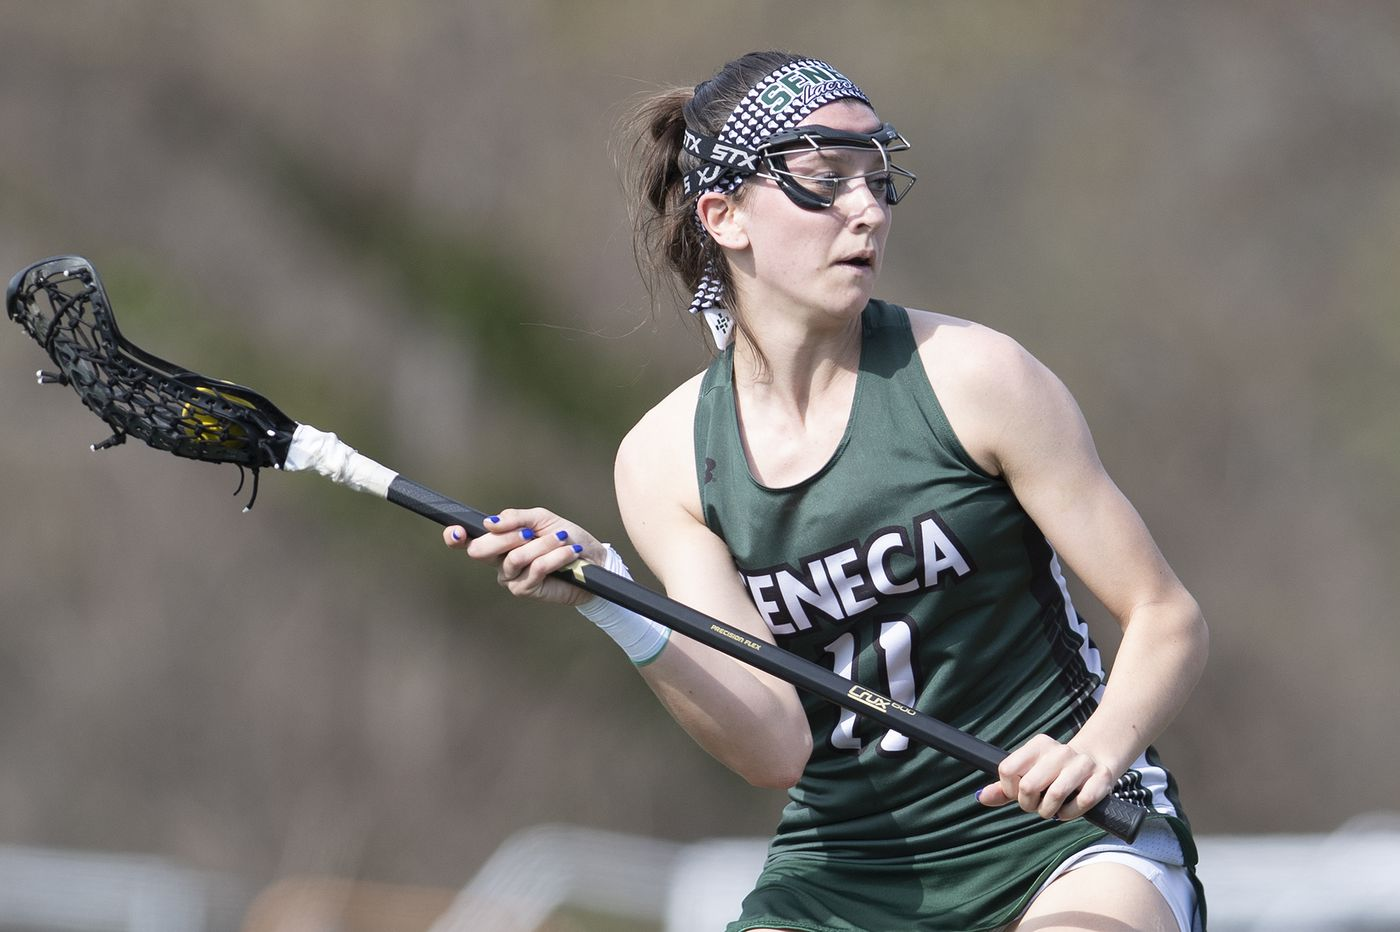 Cassidy Spilis scores goals - and does a whole lot more - for Seneca girls' lacrosse